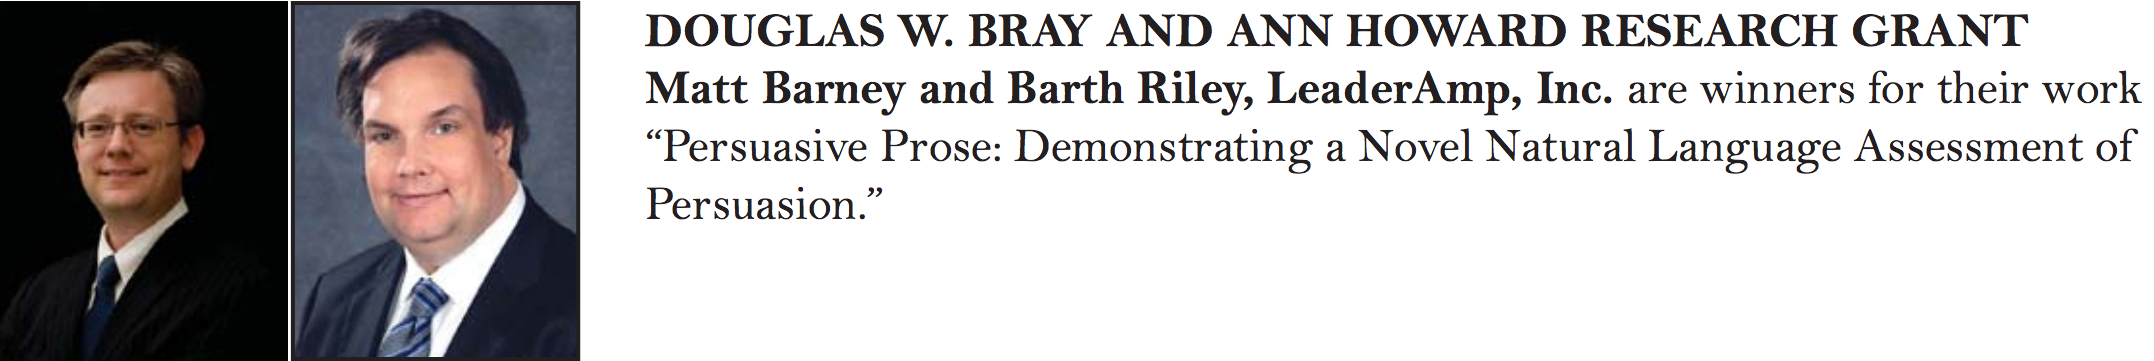 Dr. Barney and Dr. Riley were the winners of the SIOP 2018 Bray-Howard Award, a research grant previously only awarded academics.